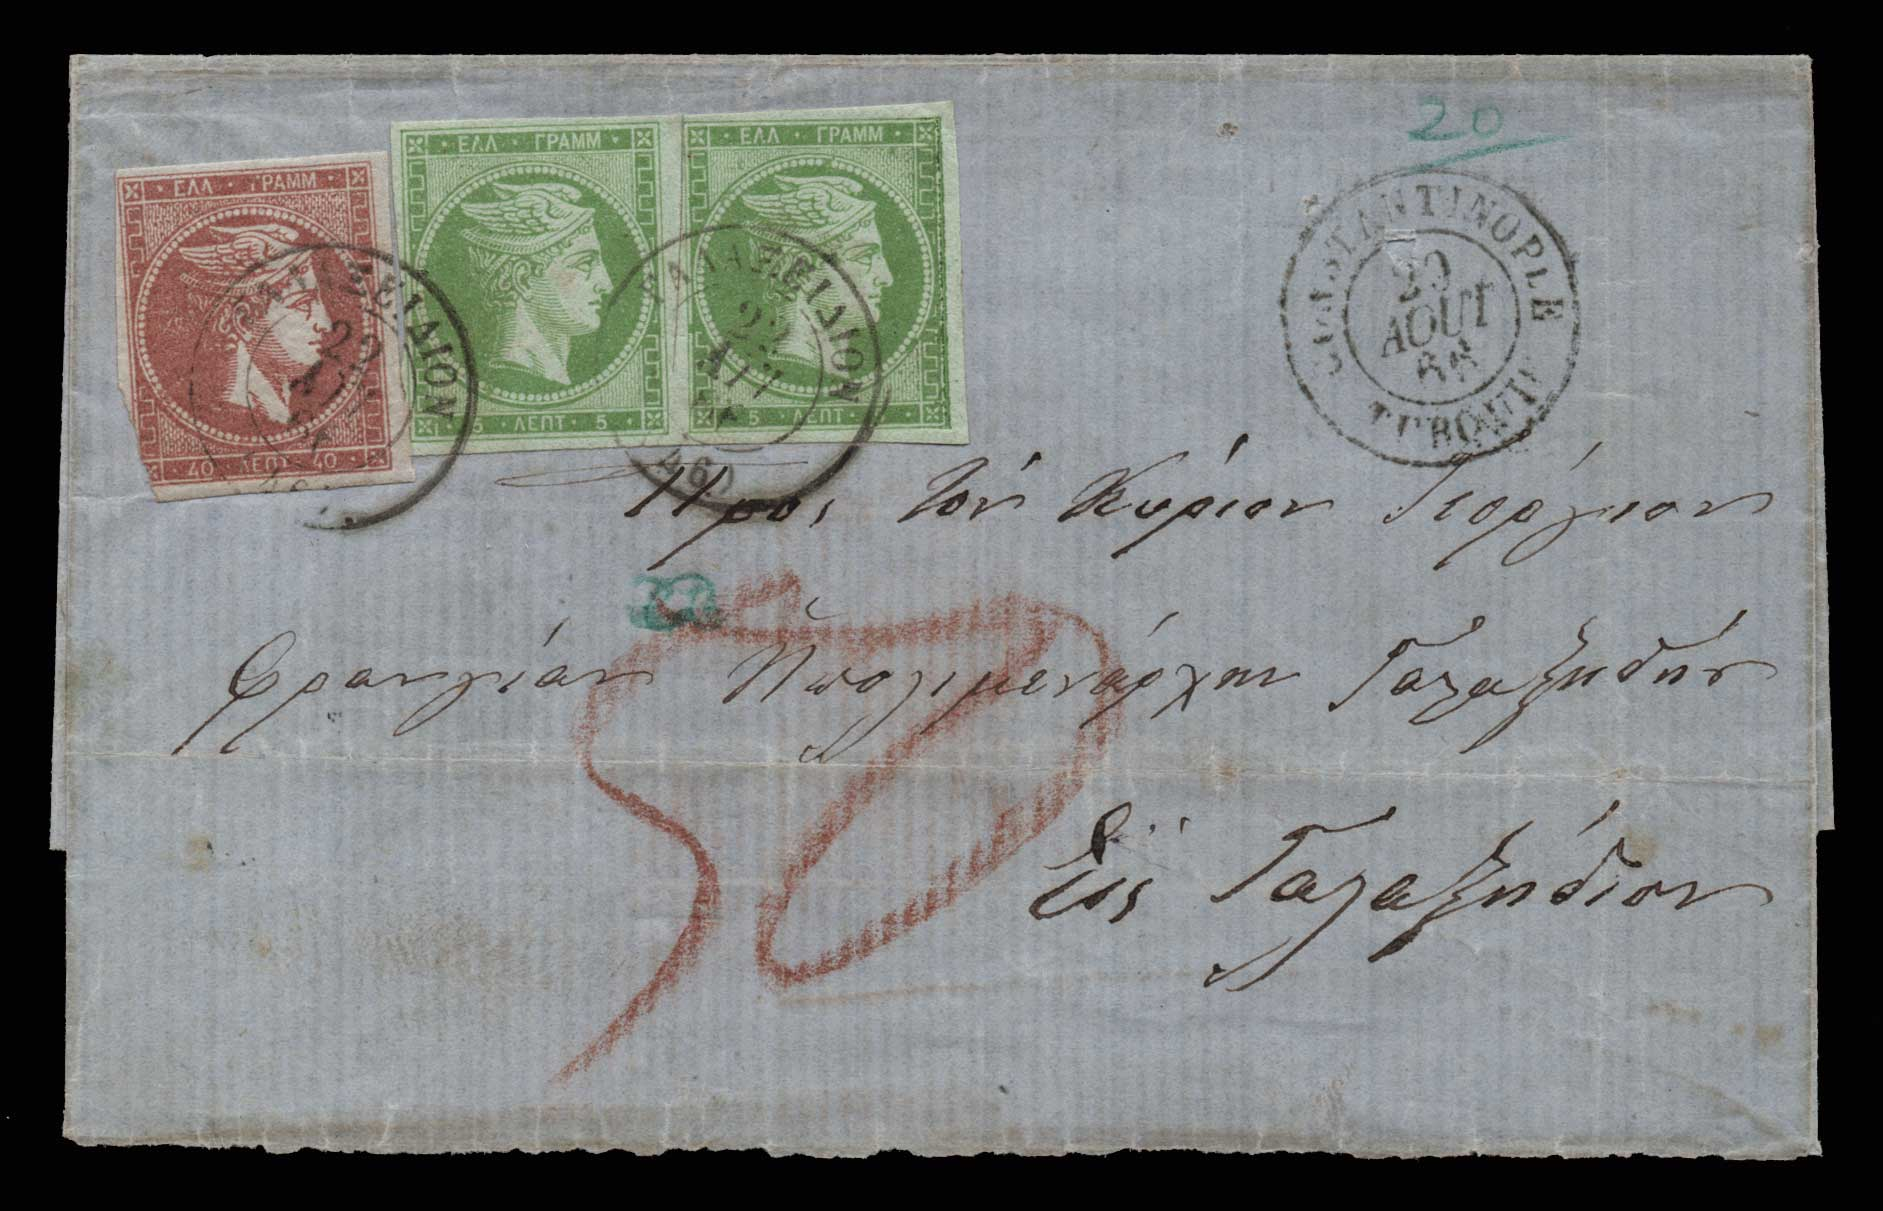 Lot 160 - -  LARGE HERMES HEAD 1862/67 consecutive athens printings -  Athens Auctions Public Auction 70 General Stamp Sale